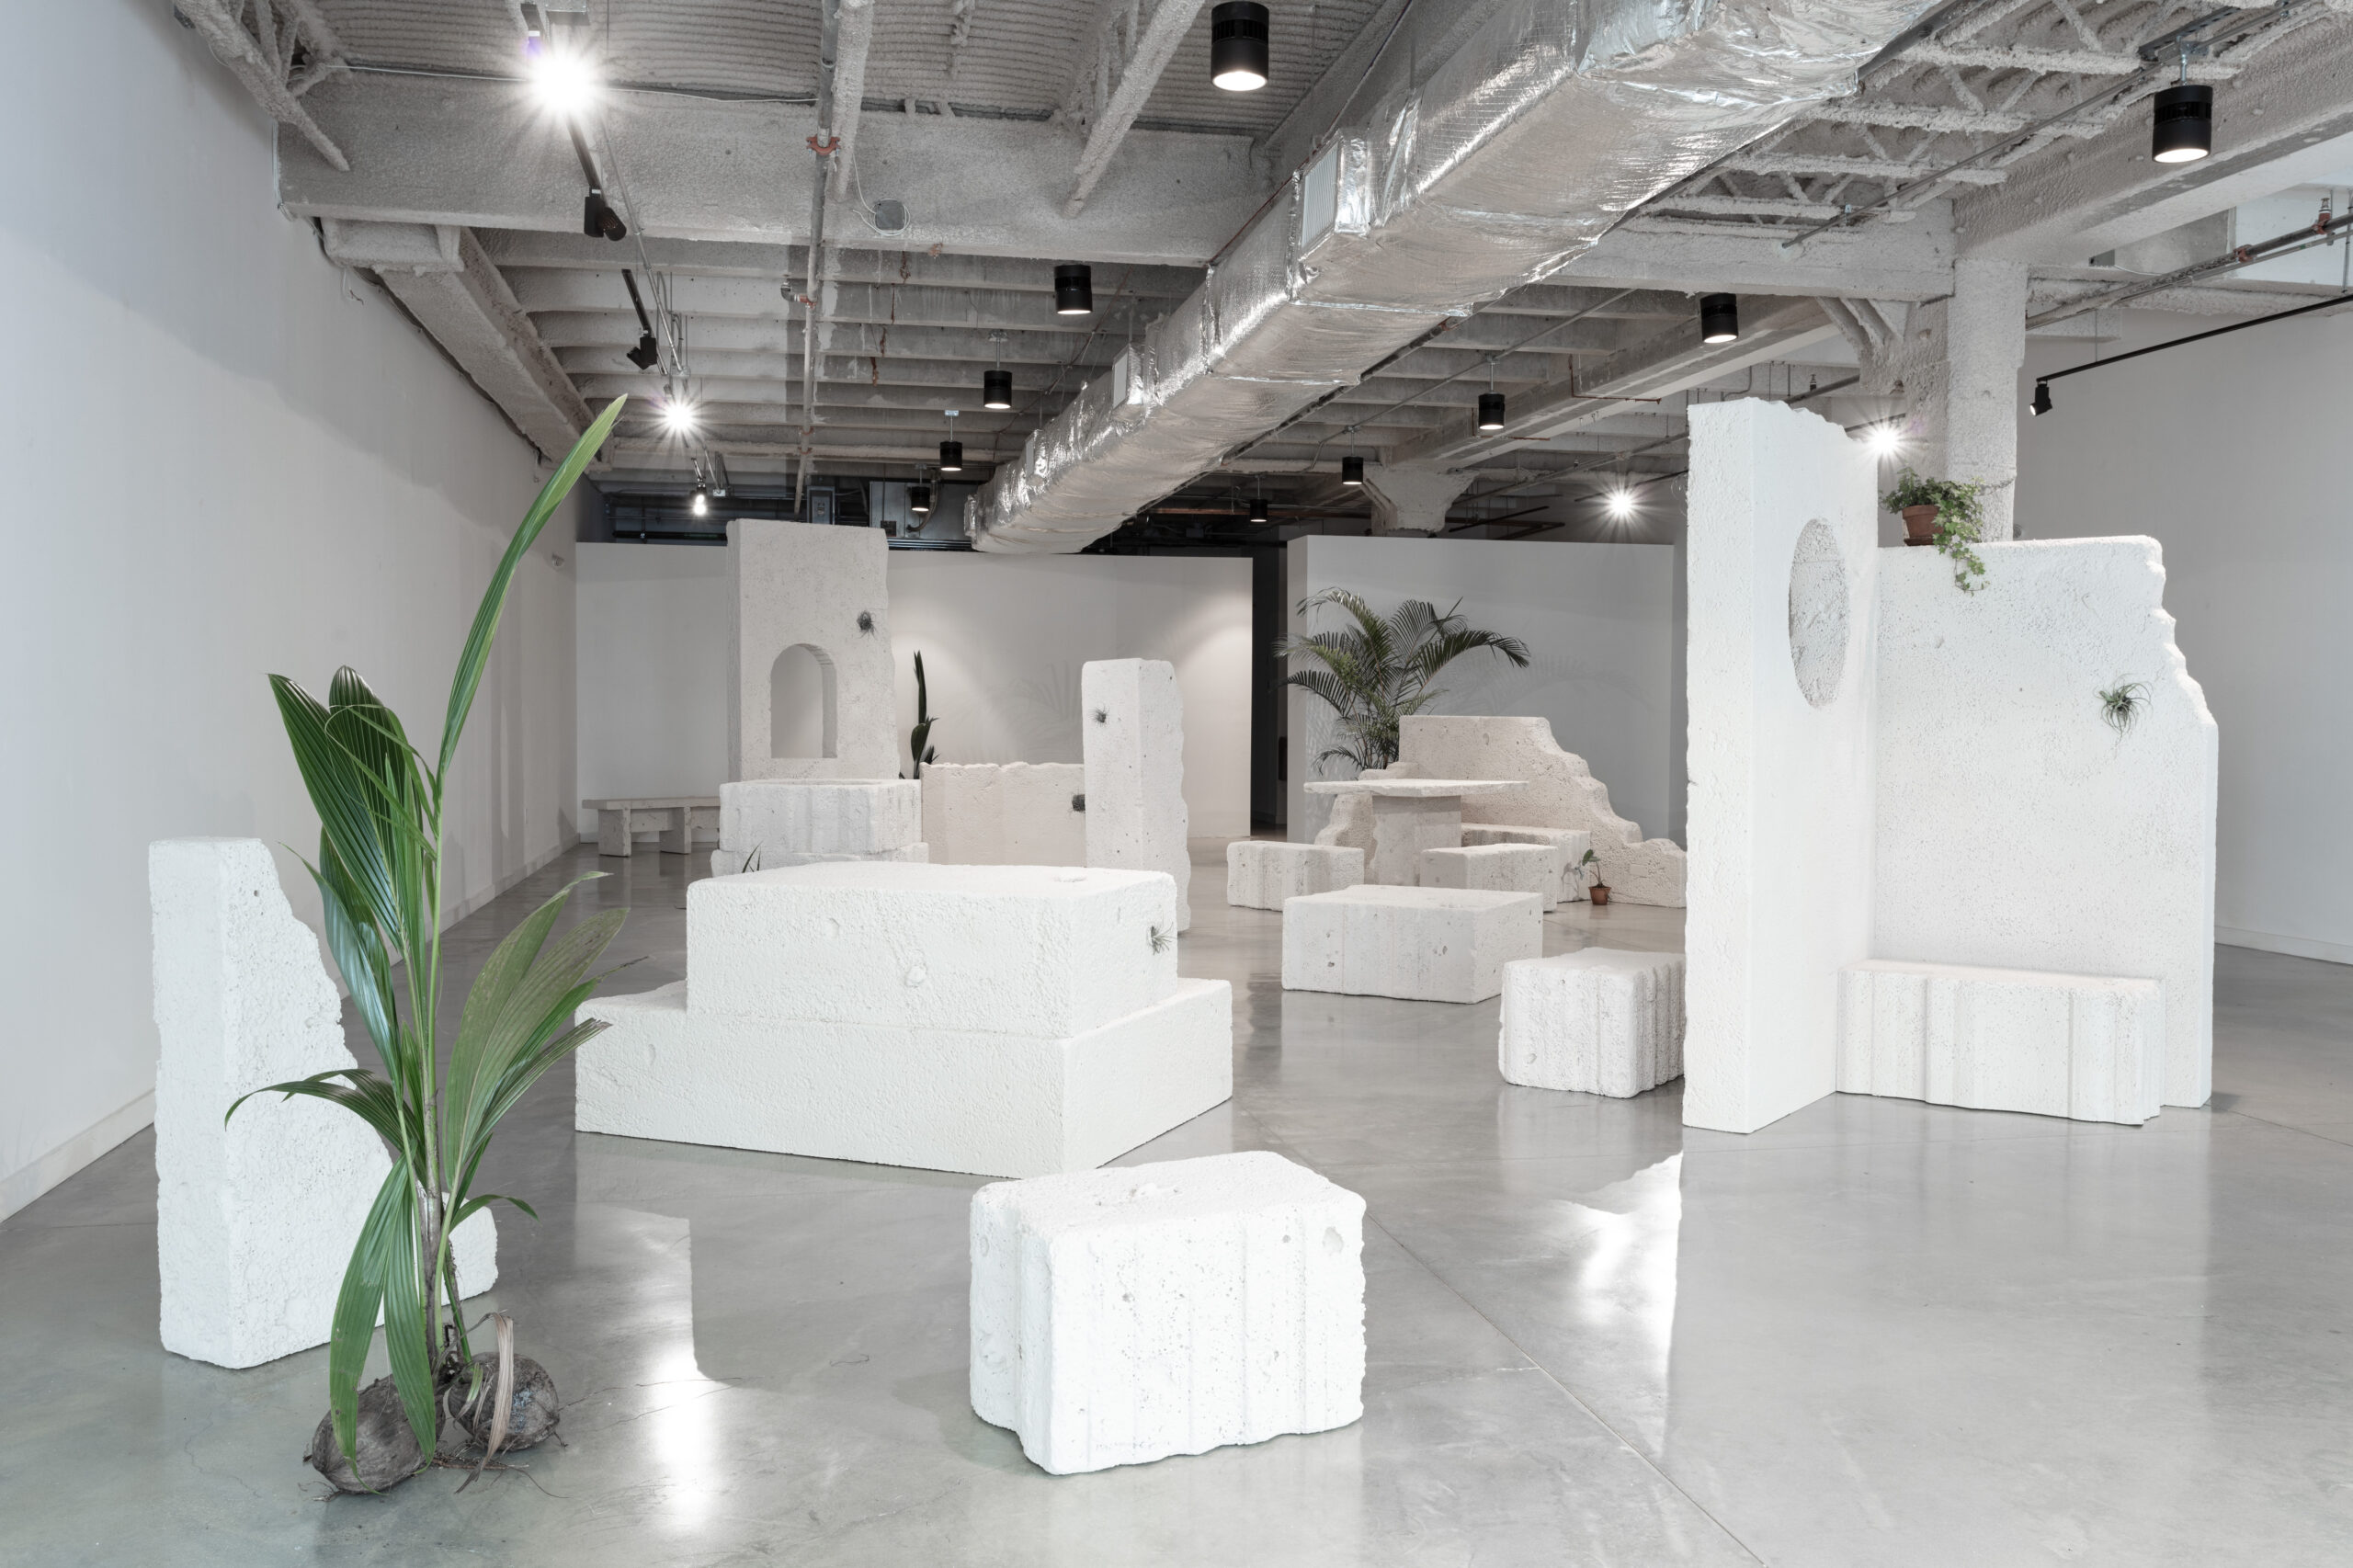 Emmett Moore, The Grotto, installation view